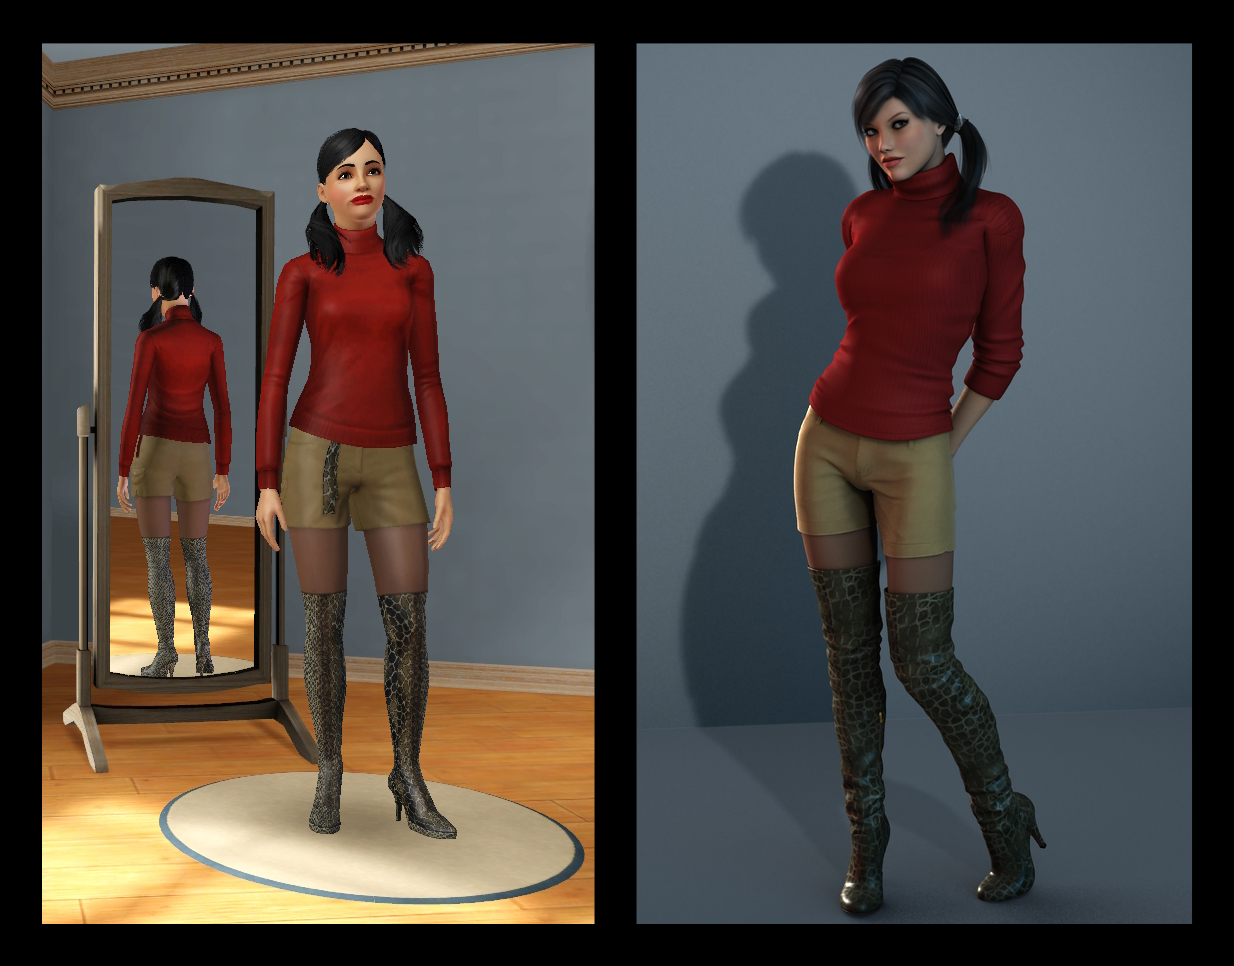 Artificial girl 3 skin mod download adult picture